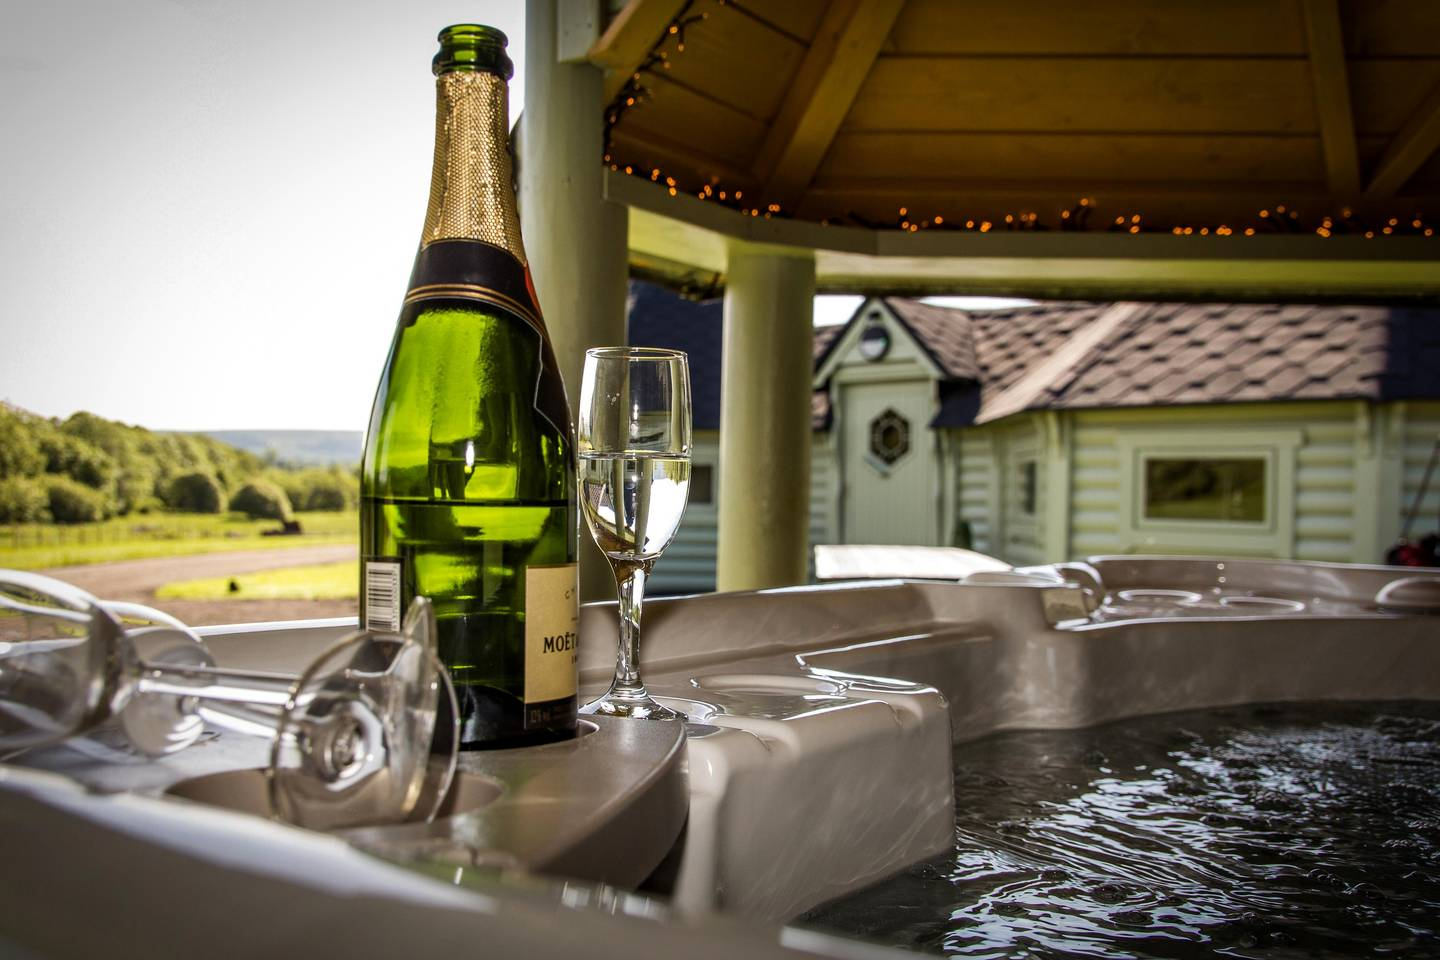 Hot Tub holidays in Loch Lomond and the Trossachs National Park